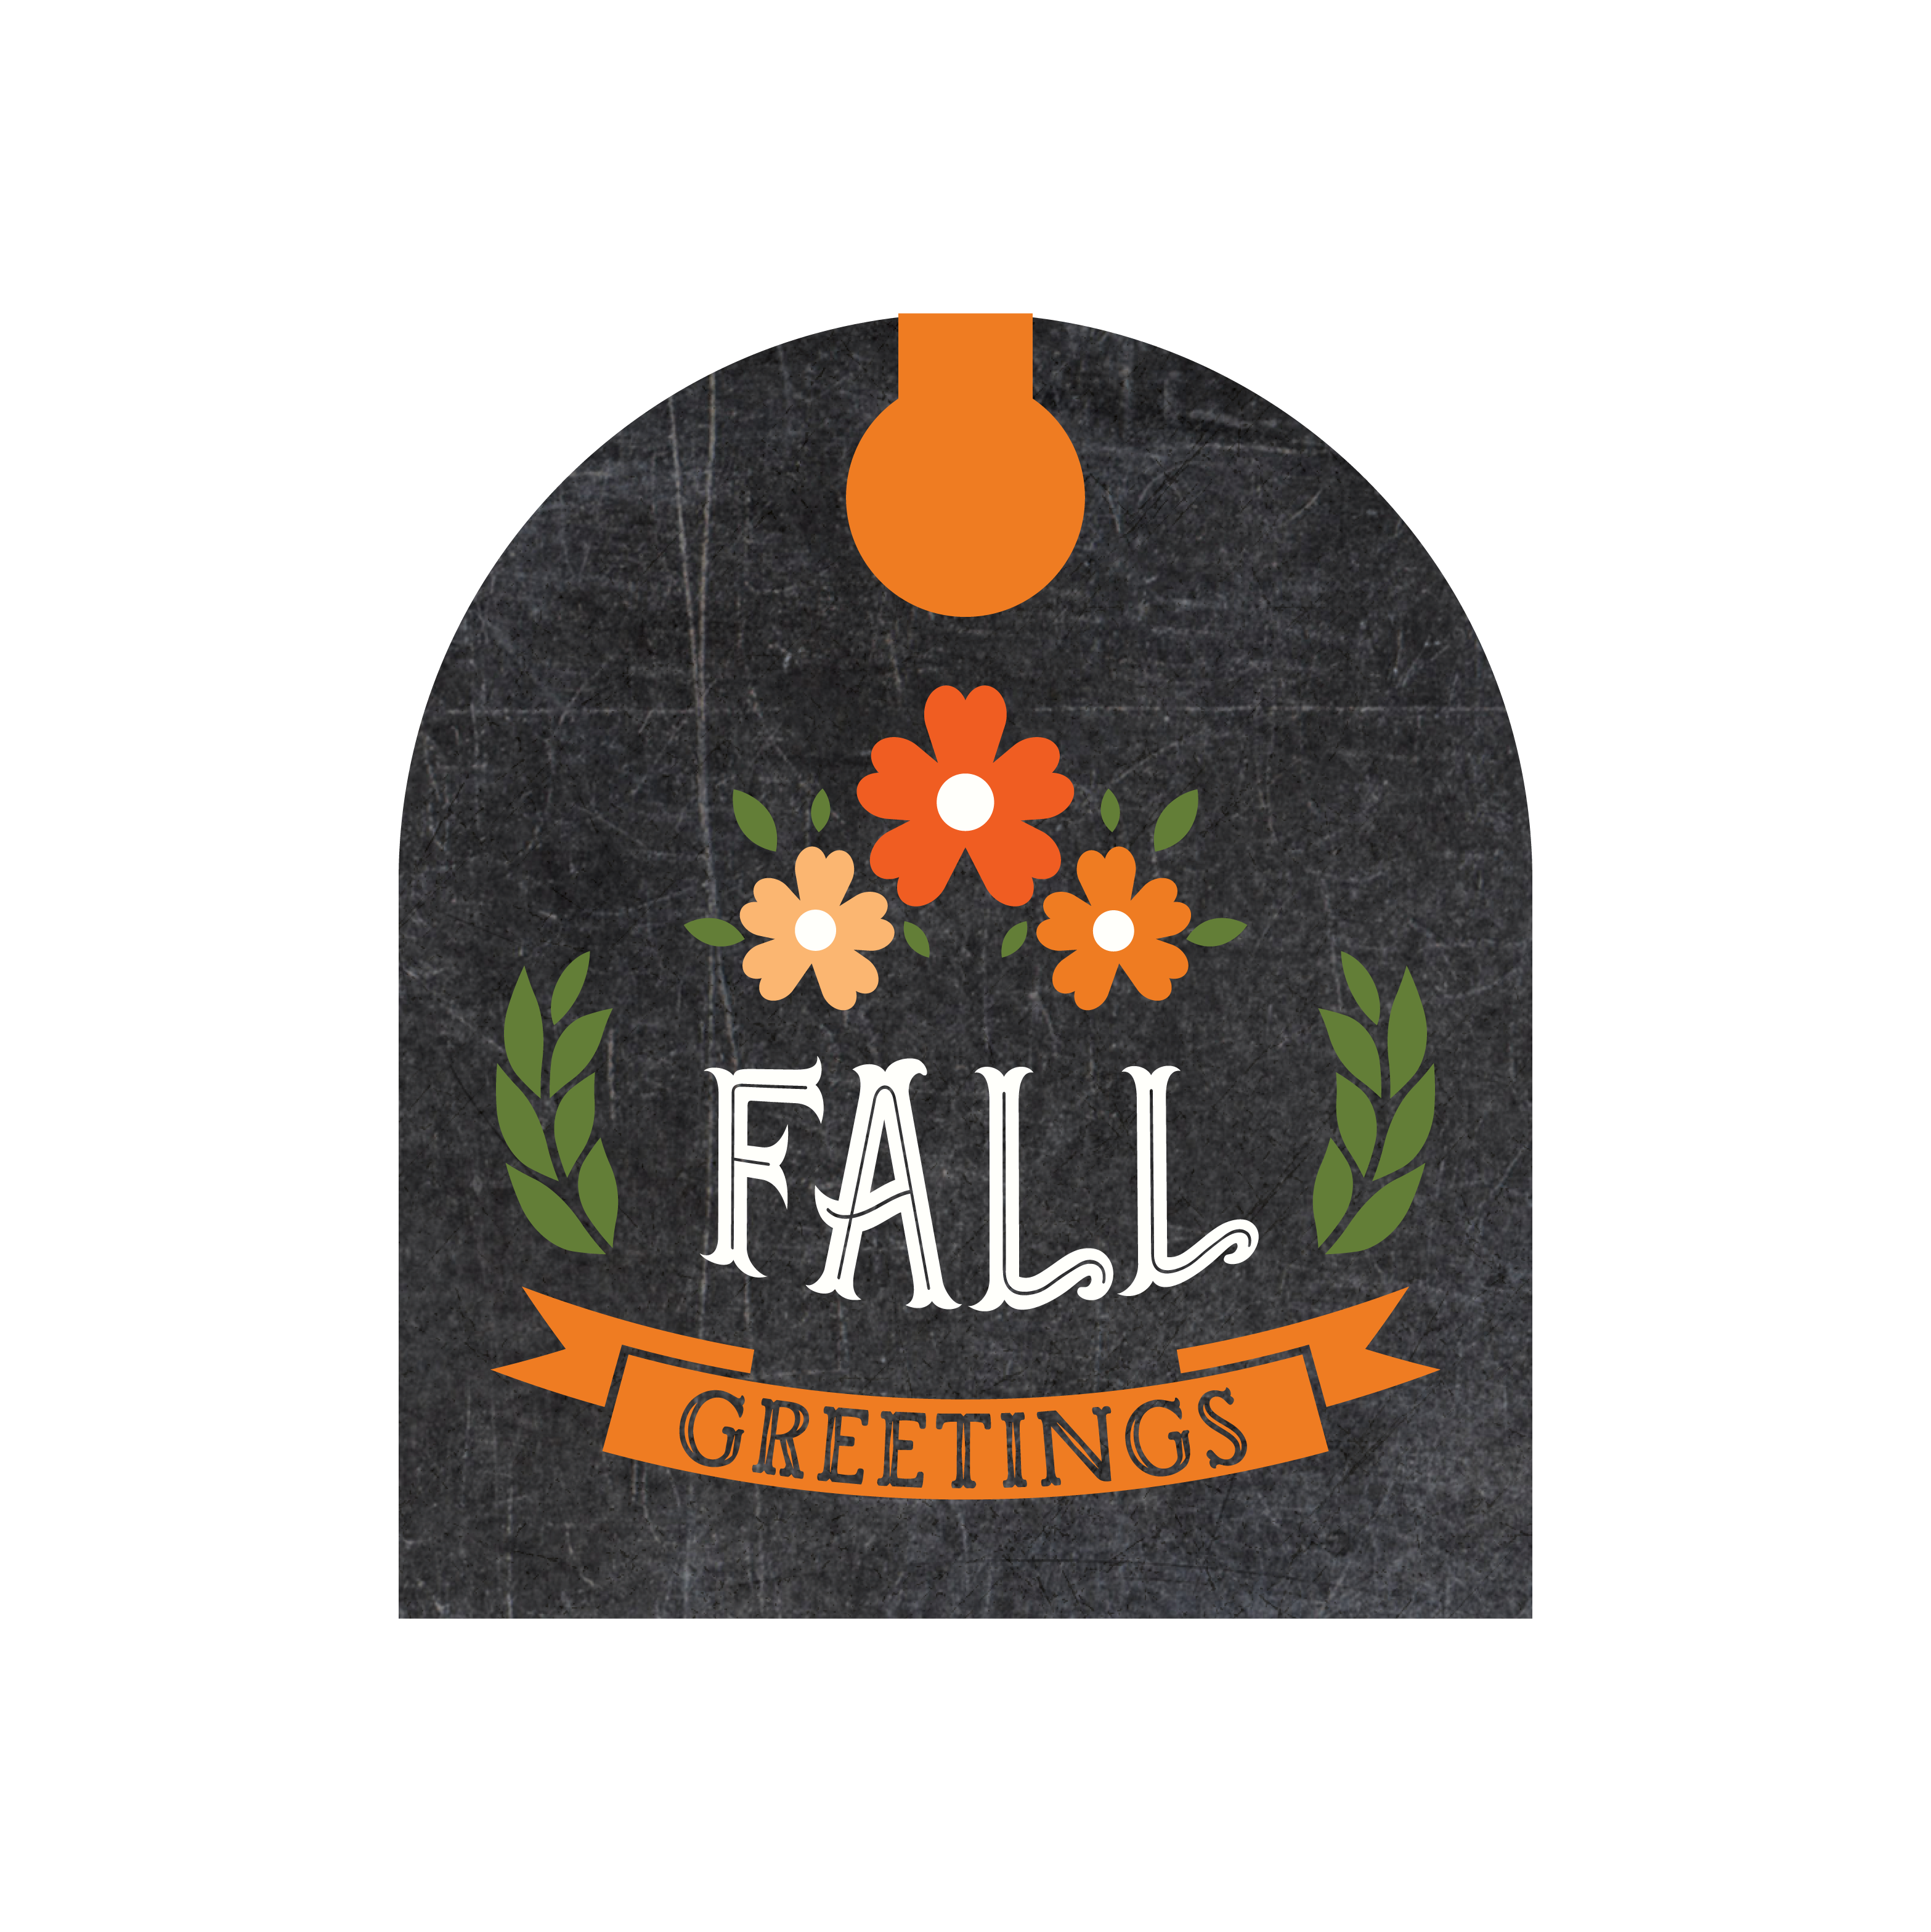 Fall Greetings Tag Print & Cut File